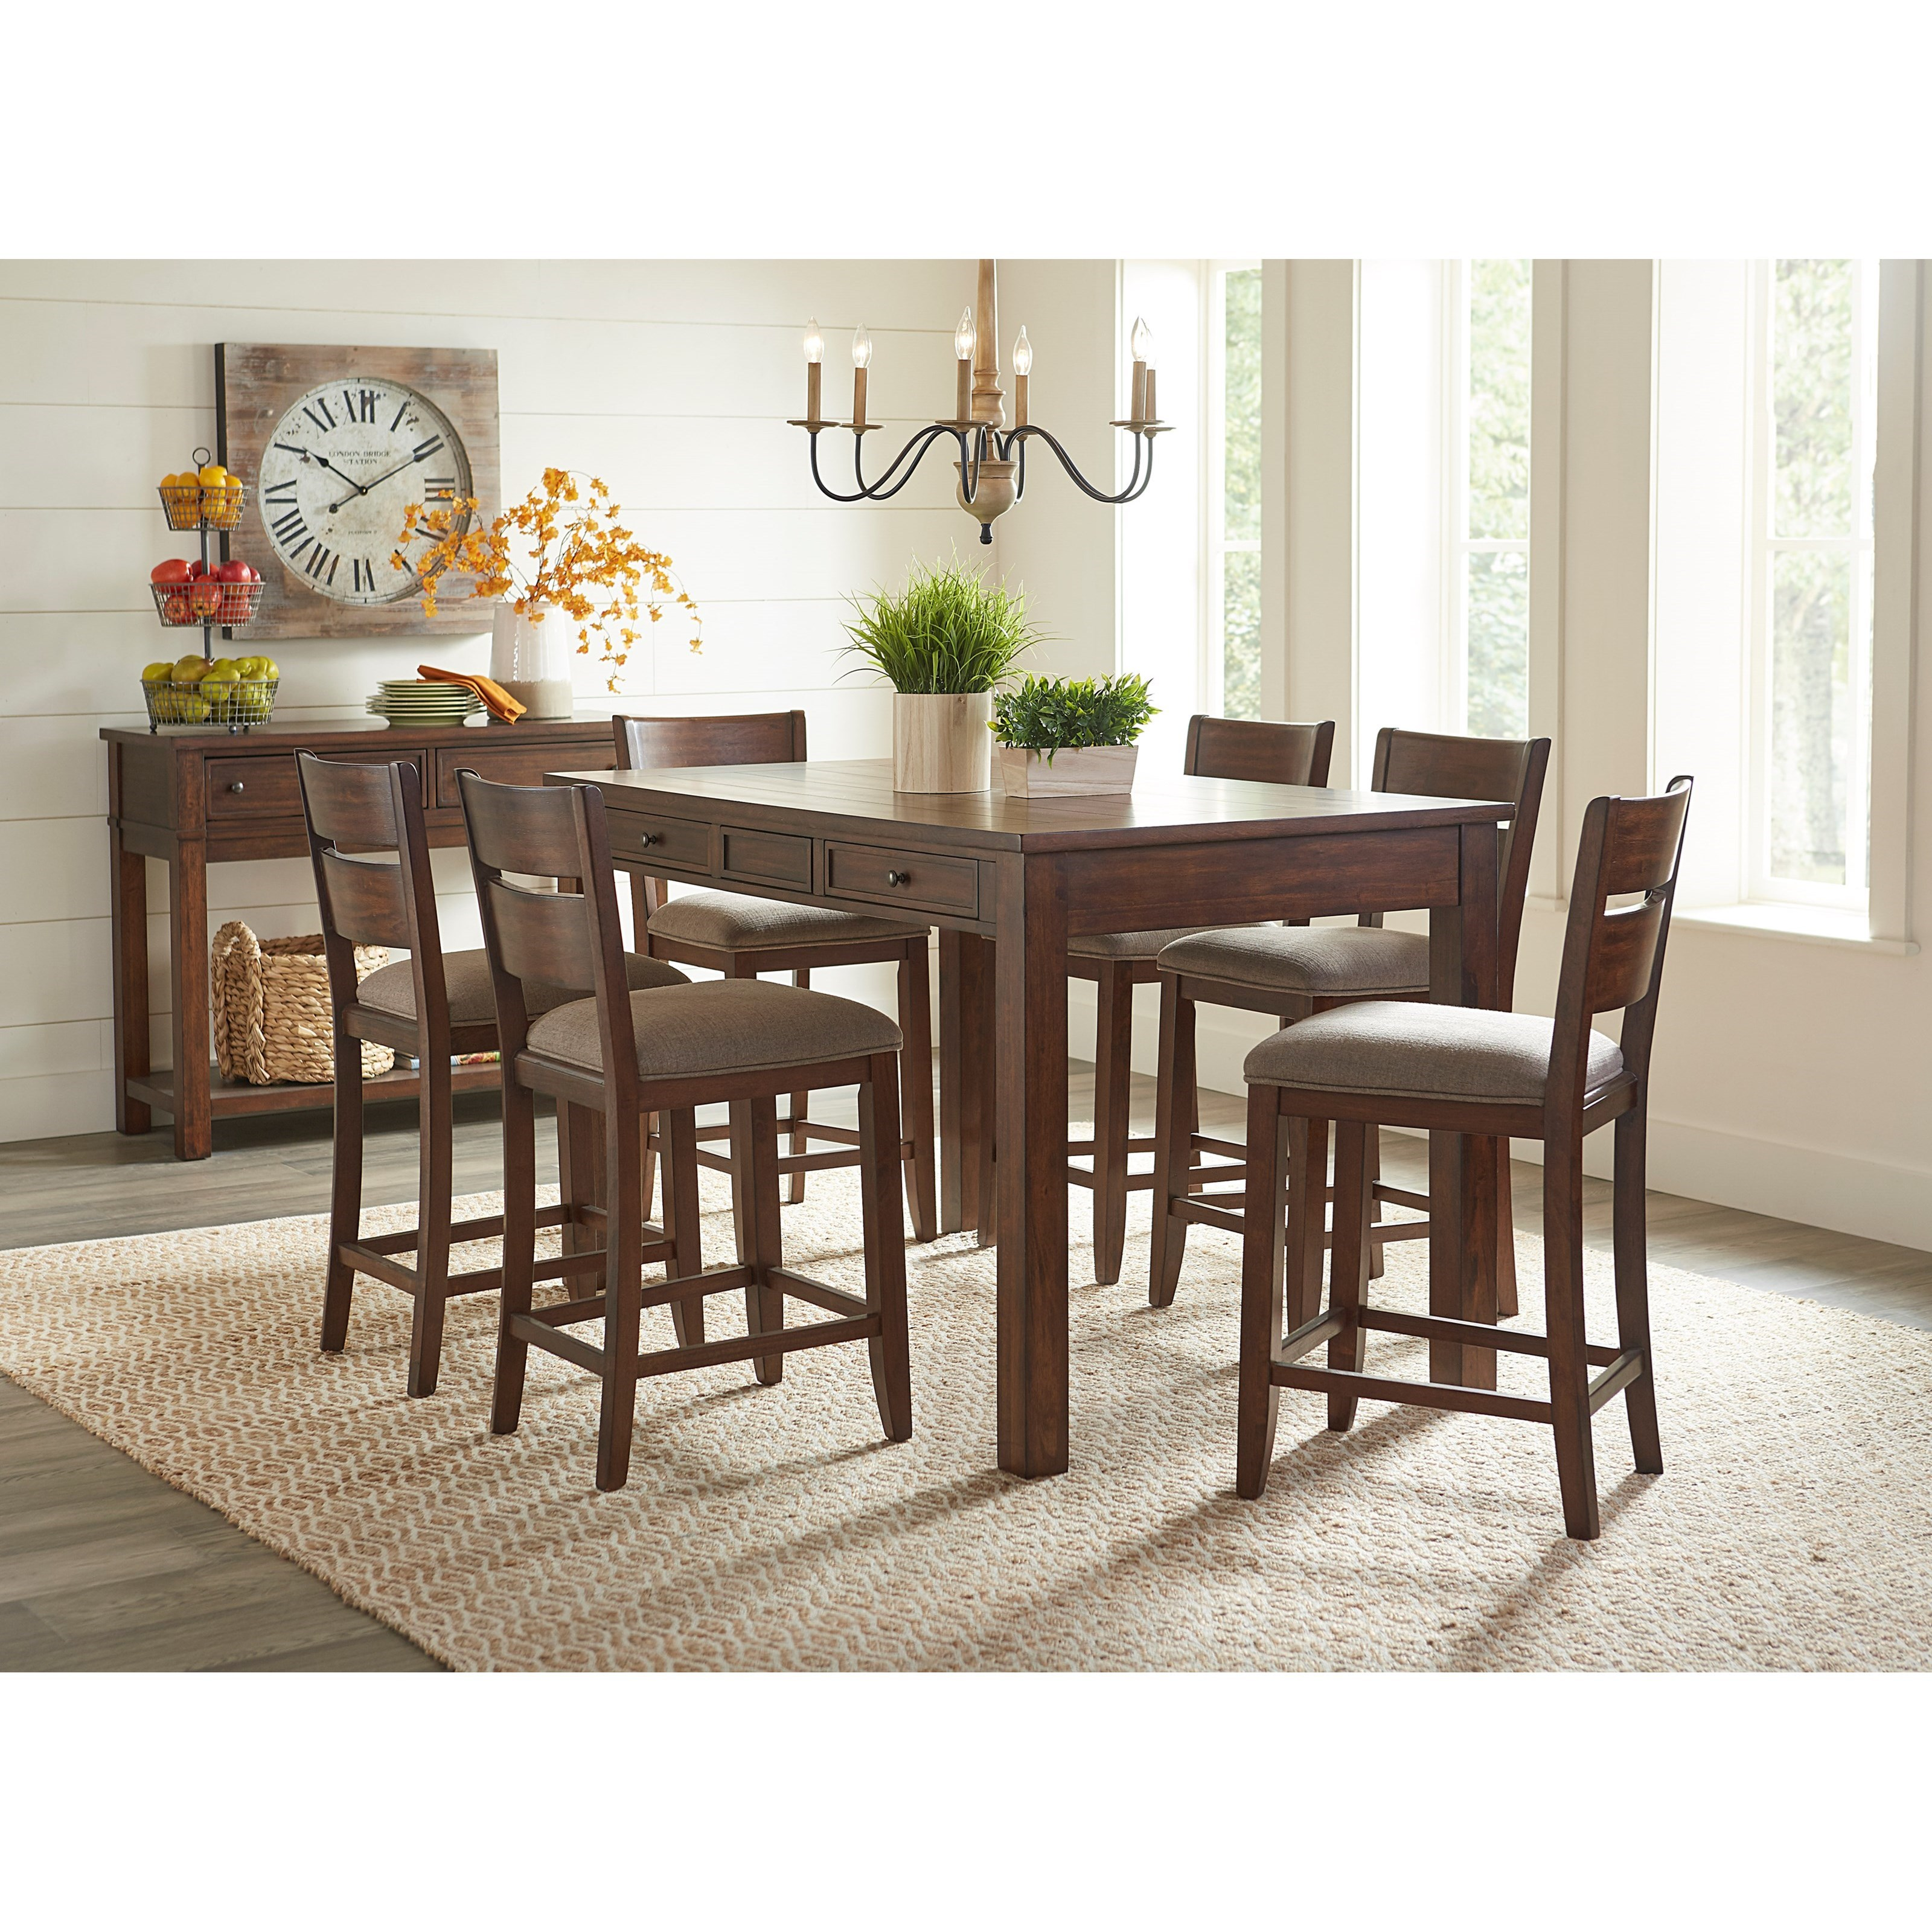 Standard Furniture Kyle Casual Dining Server With 2